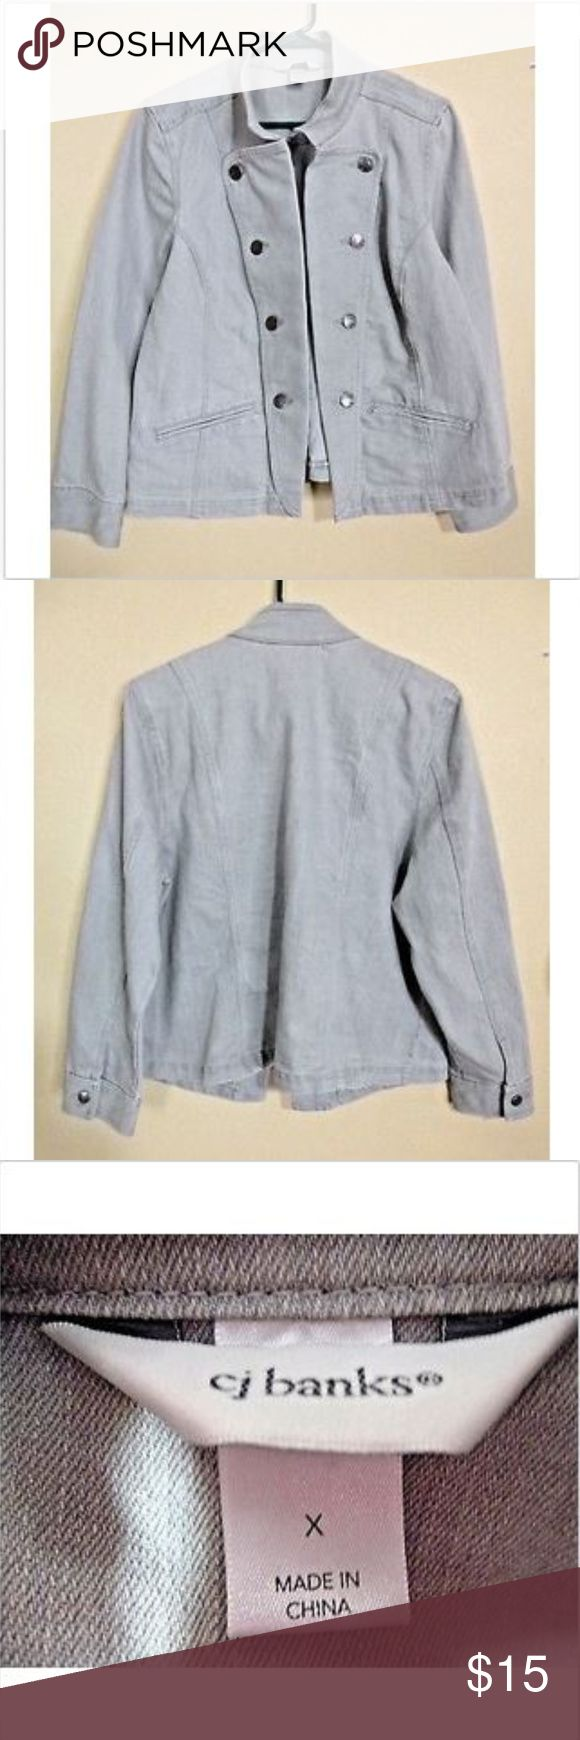 """C J Banks Womens Tan/Gray Military Style Jacket XL Brand:  C. J. Banks Condition:  Pre-owned Details:  Women's military style jacket, tan/gray color, 2 pockets that have not yet been opened, long sleeve.  Material:  71% Cotton, 28% Polyester, 1% Spandex Womens Size:  XL  Length:  25"""" Chest:  42"""" Sleeve Length from underarm to cuff:  16"""" Inventory #-- 01307 CJ Banks Jackets & Coats"""